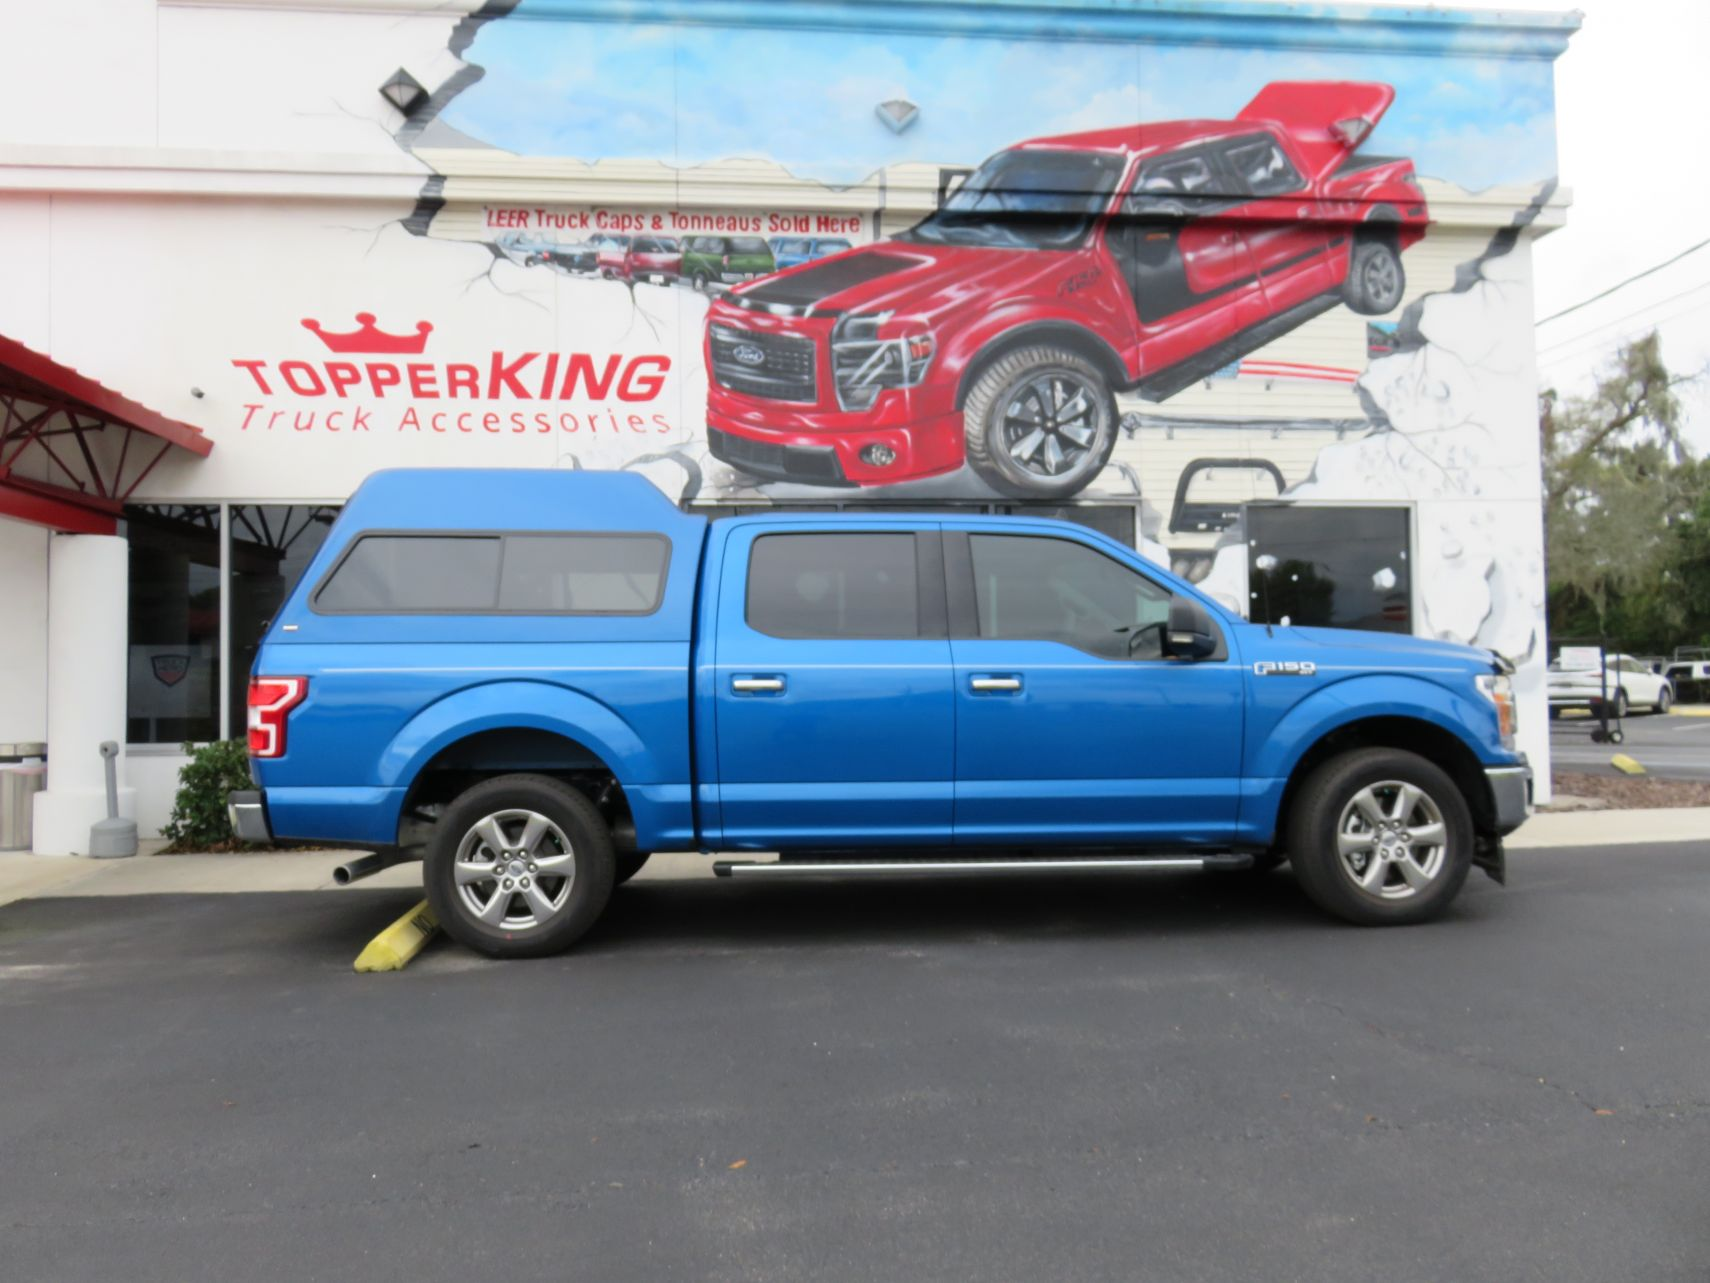 2018 Blue Ford F150 Ranch Supreme, Hitch, Bug Guard, Tint by TopperKING in Brandon, FL 813-689-2449 or Clearwater, FL 727-530-9066. Call today to start!